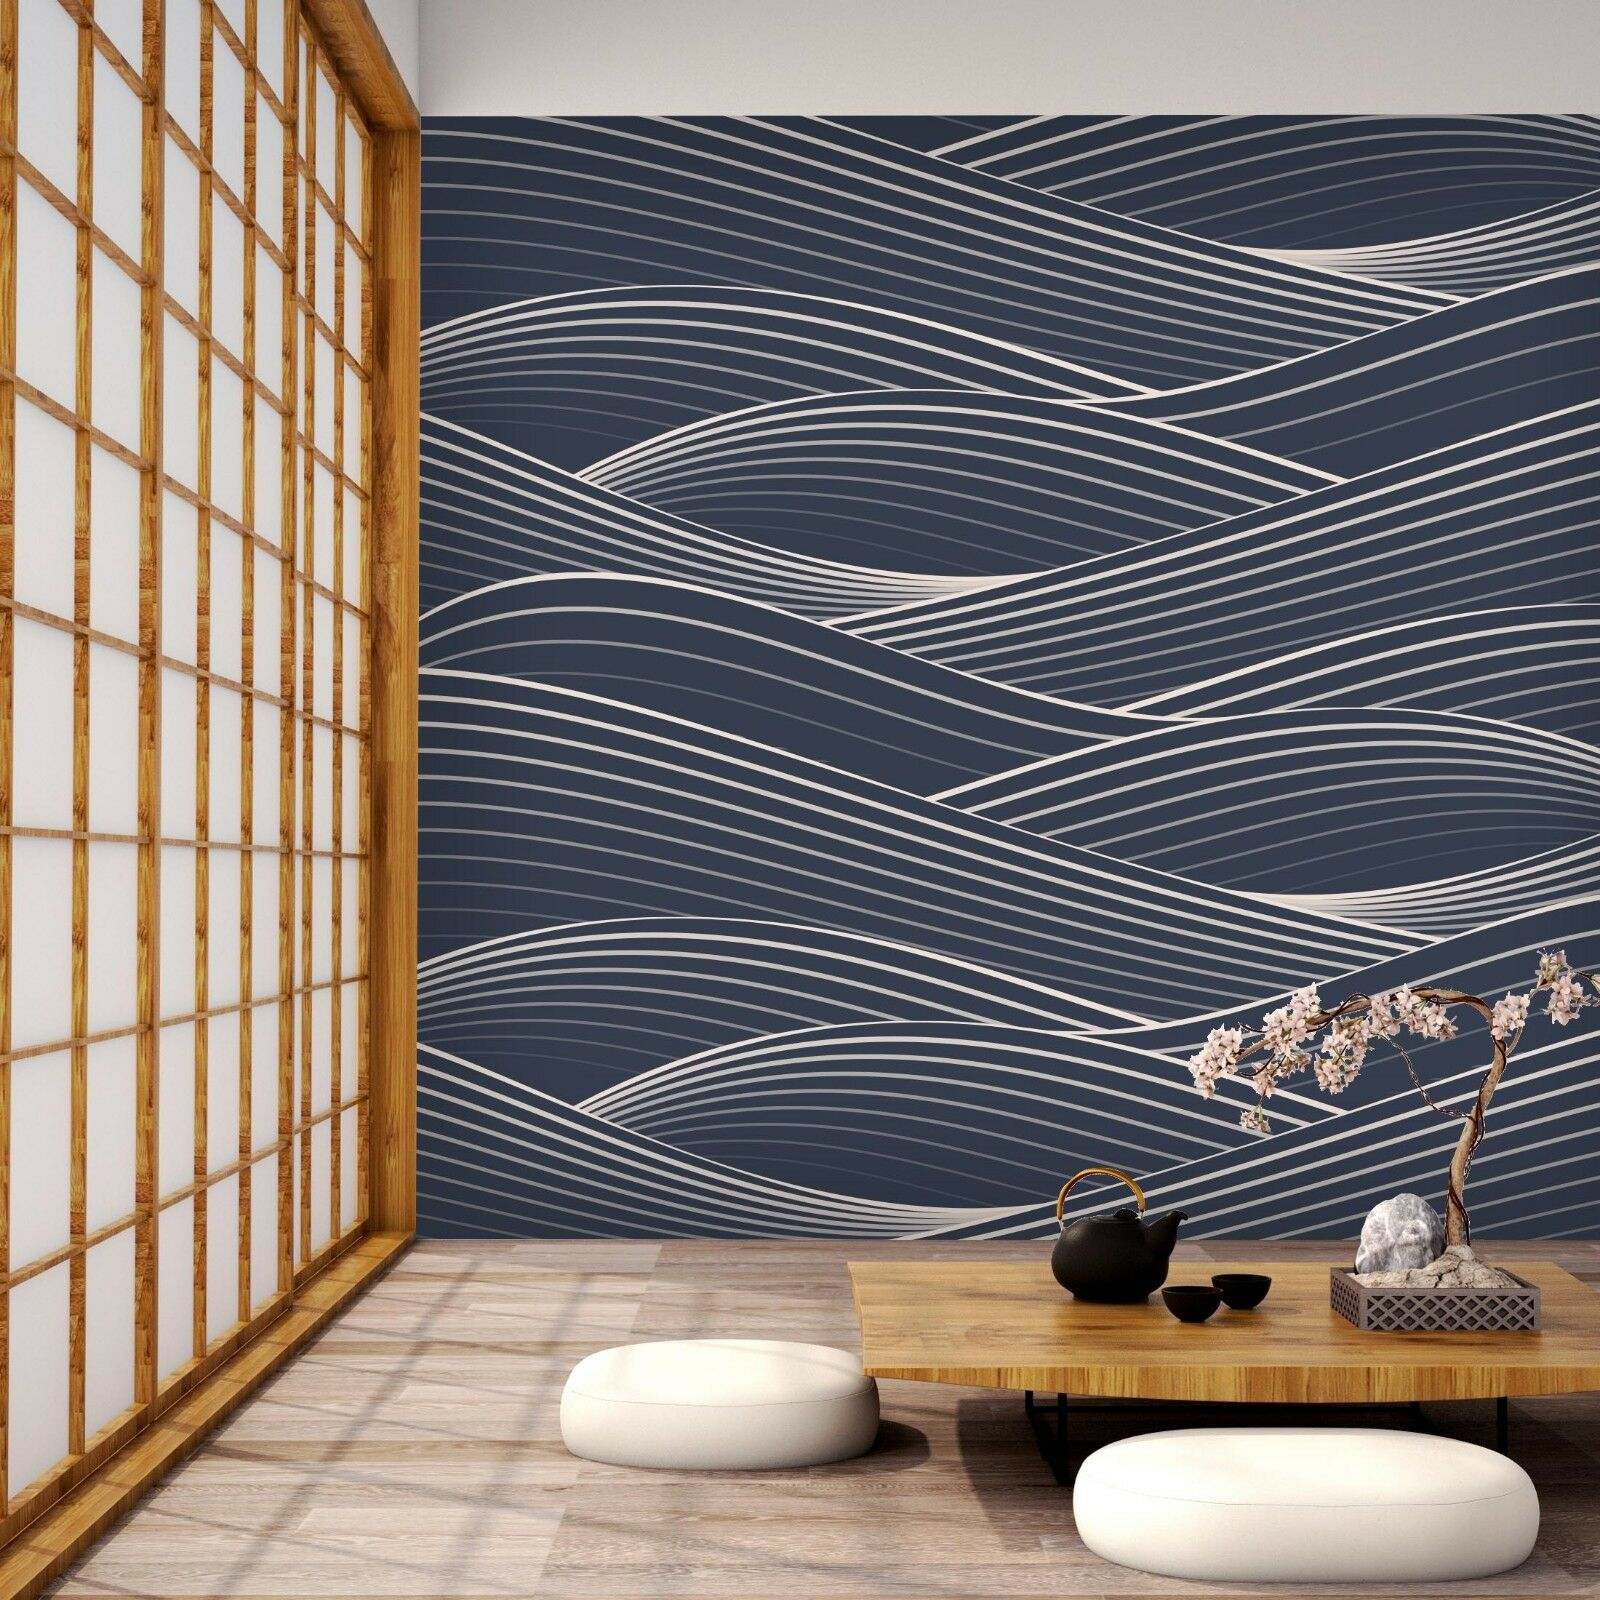 3D Waves Line 7170 Wall Paper Print Wall Decal Decal Decal Deco Indoor Wall Murals US Summer 5292b7